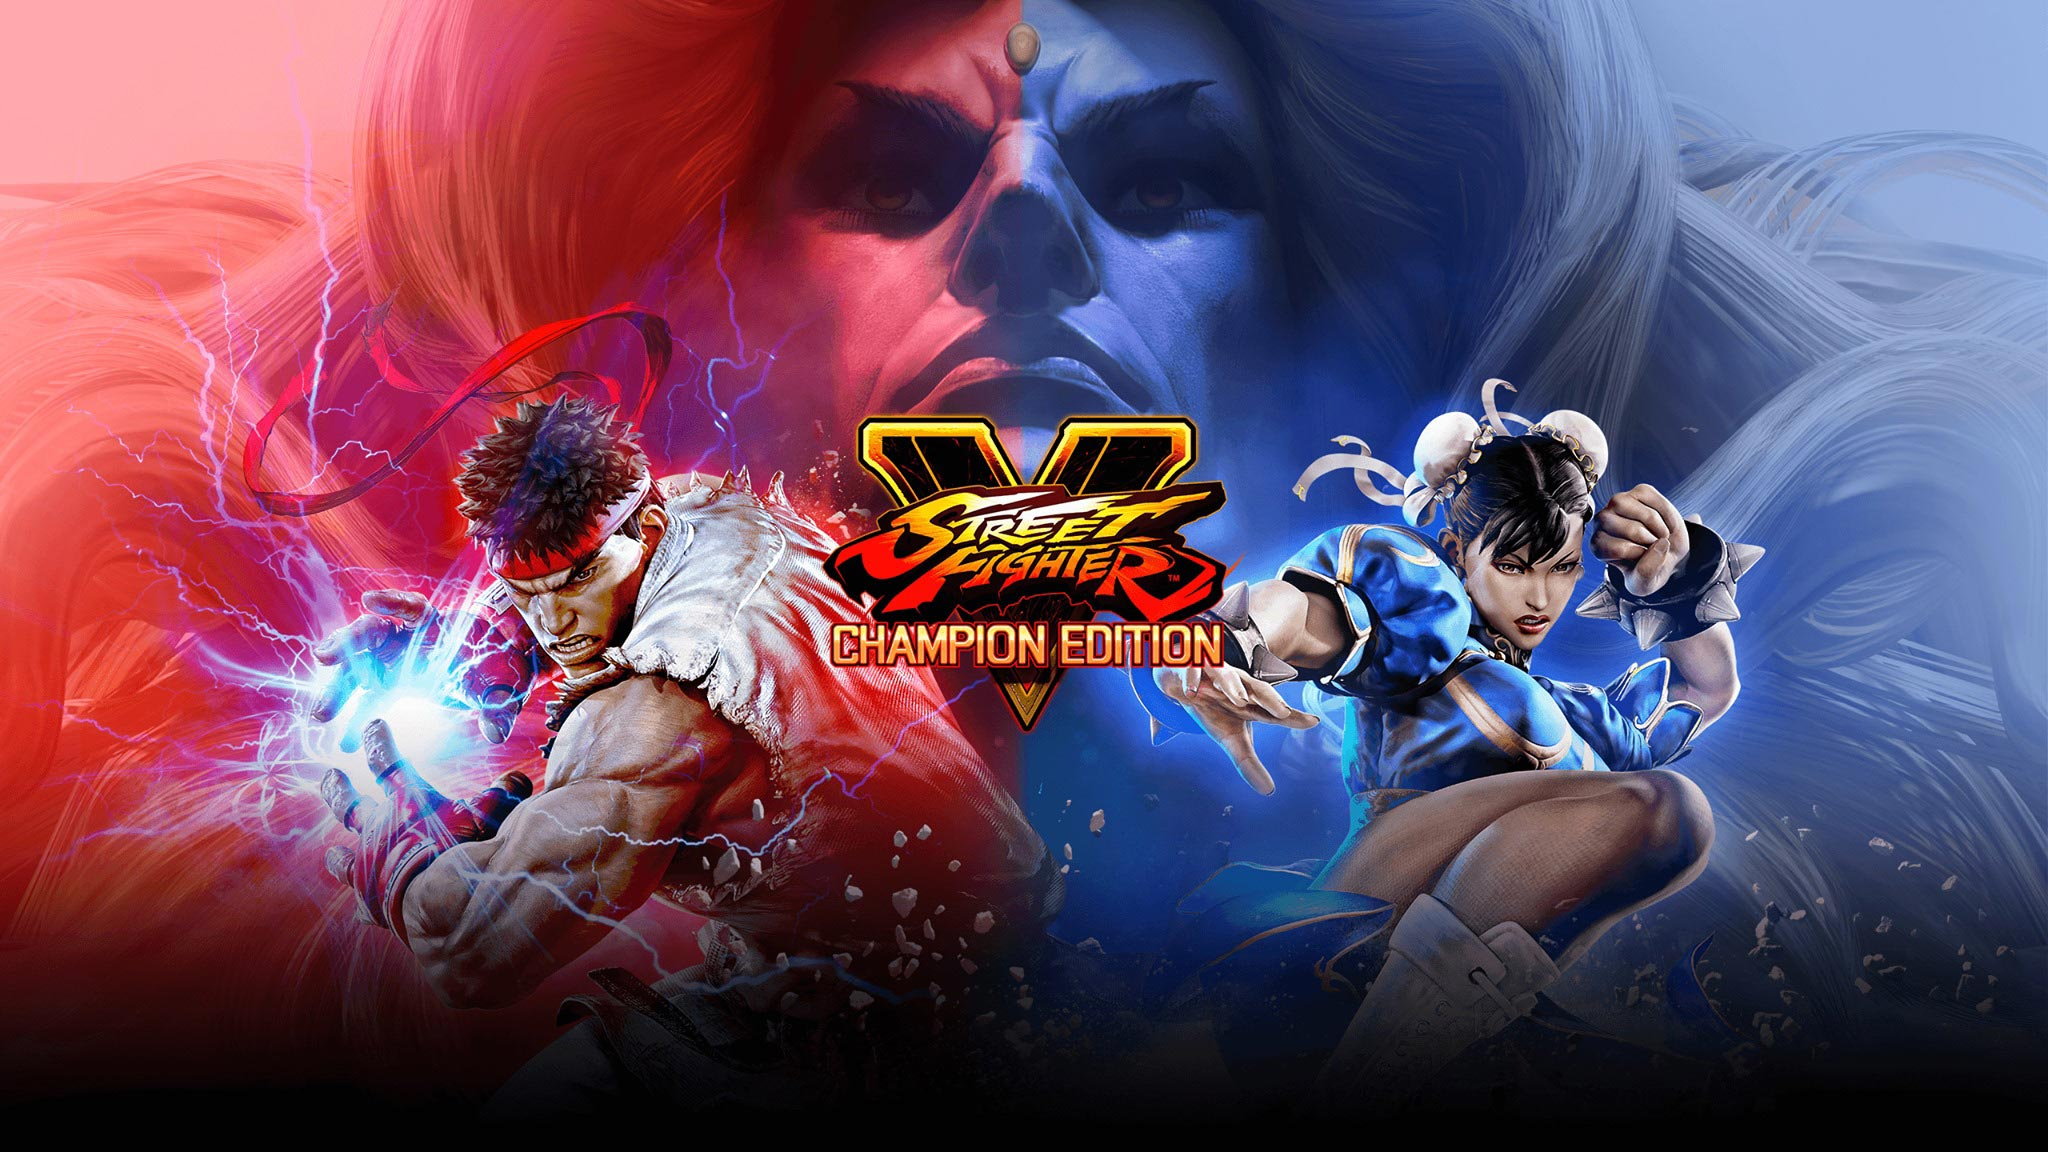 Street Fighter 5 Champion Edition 1 out of 5 image gallery